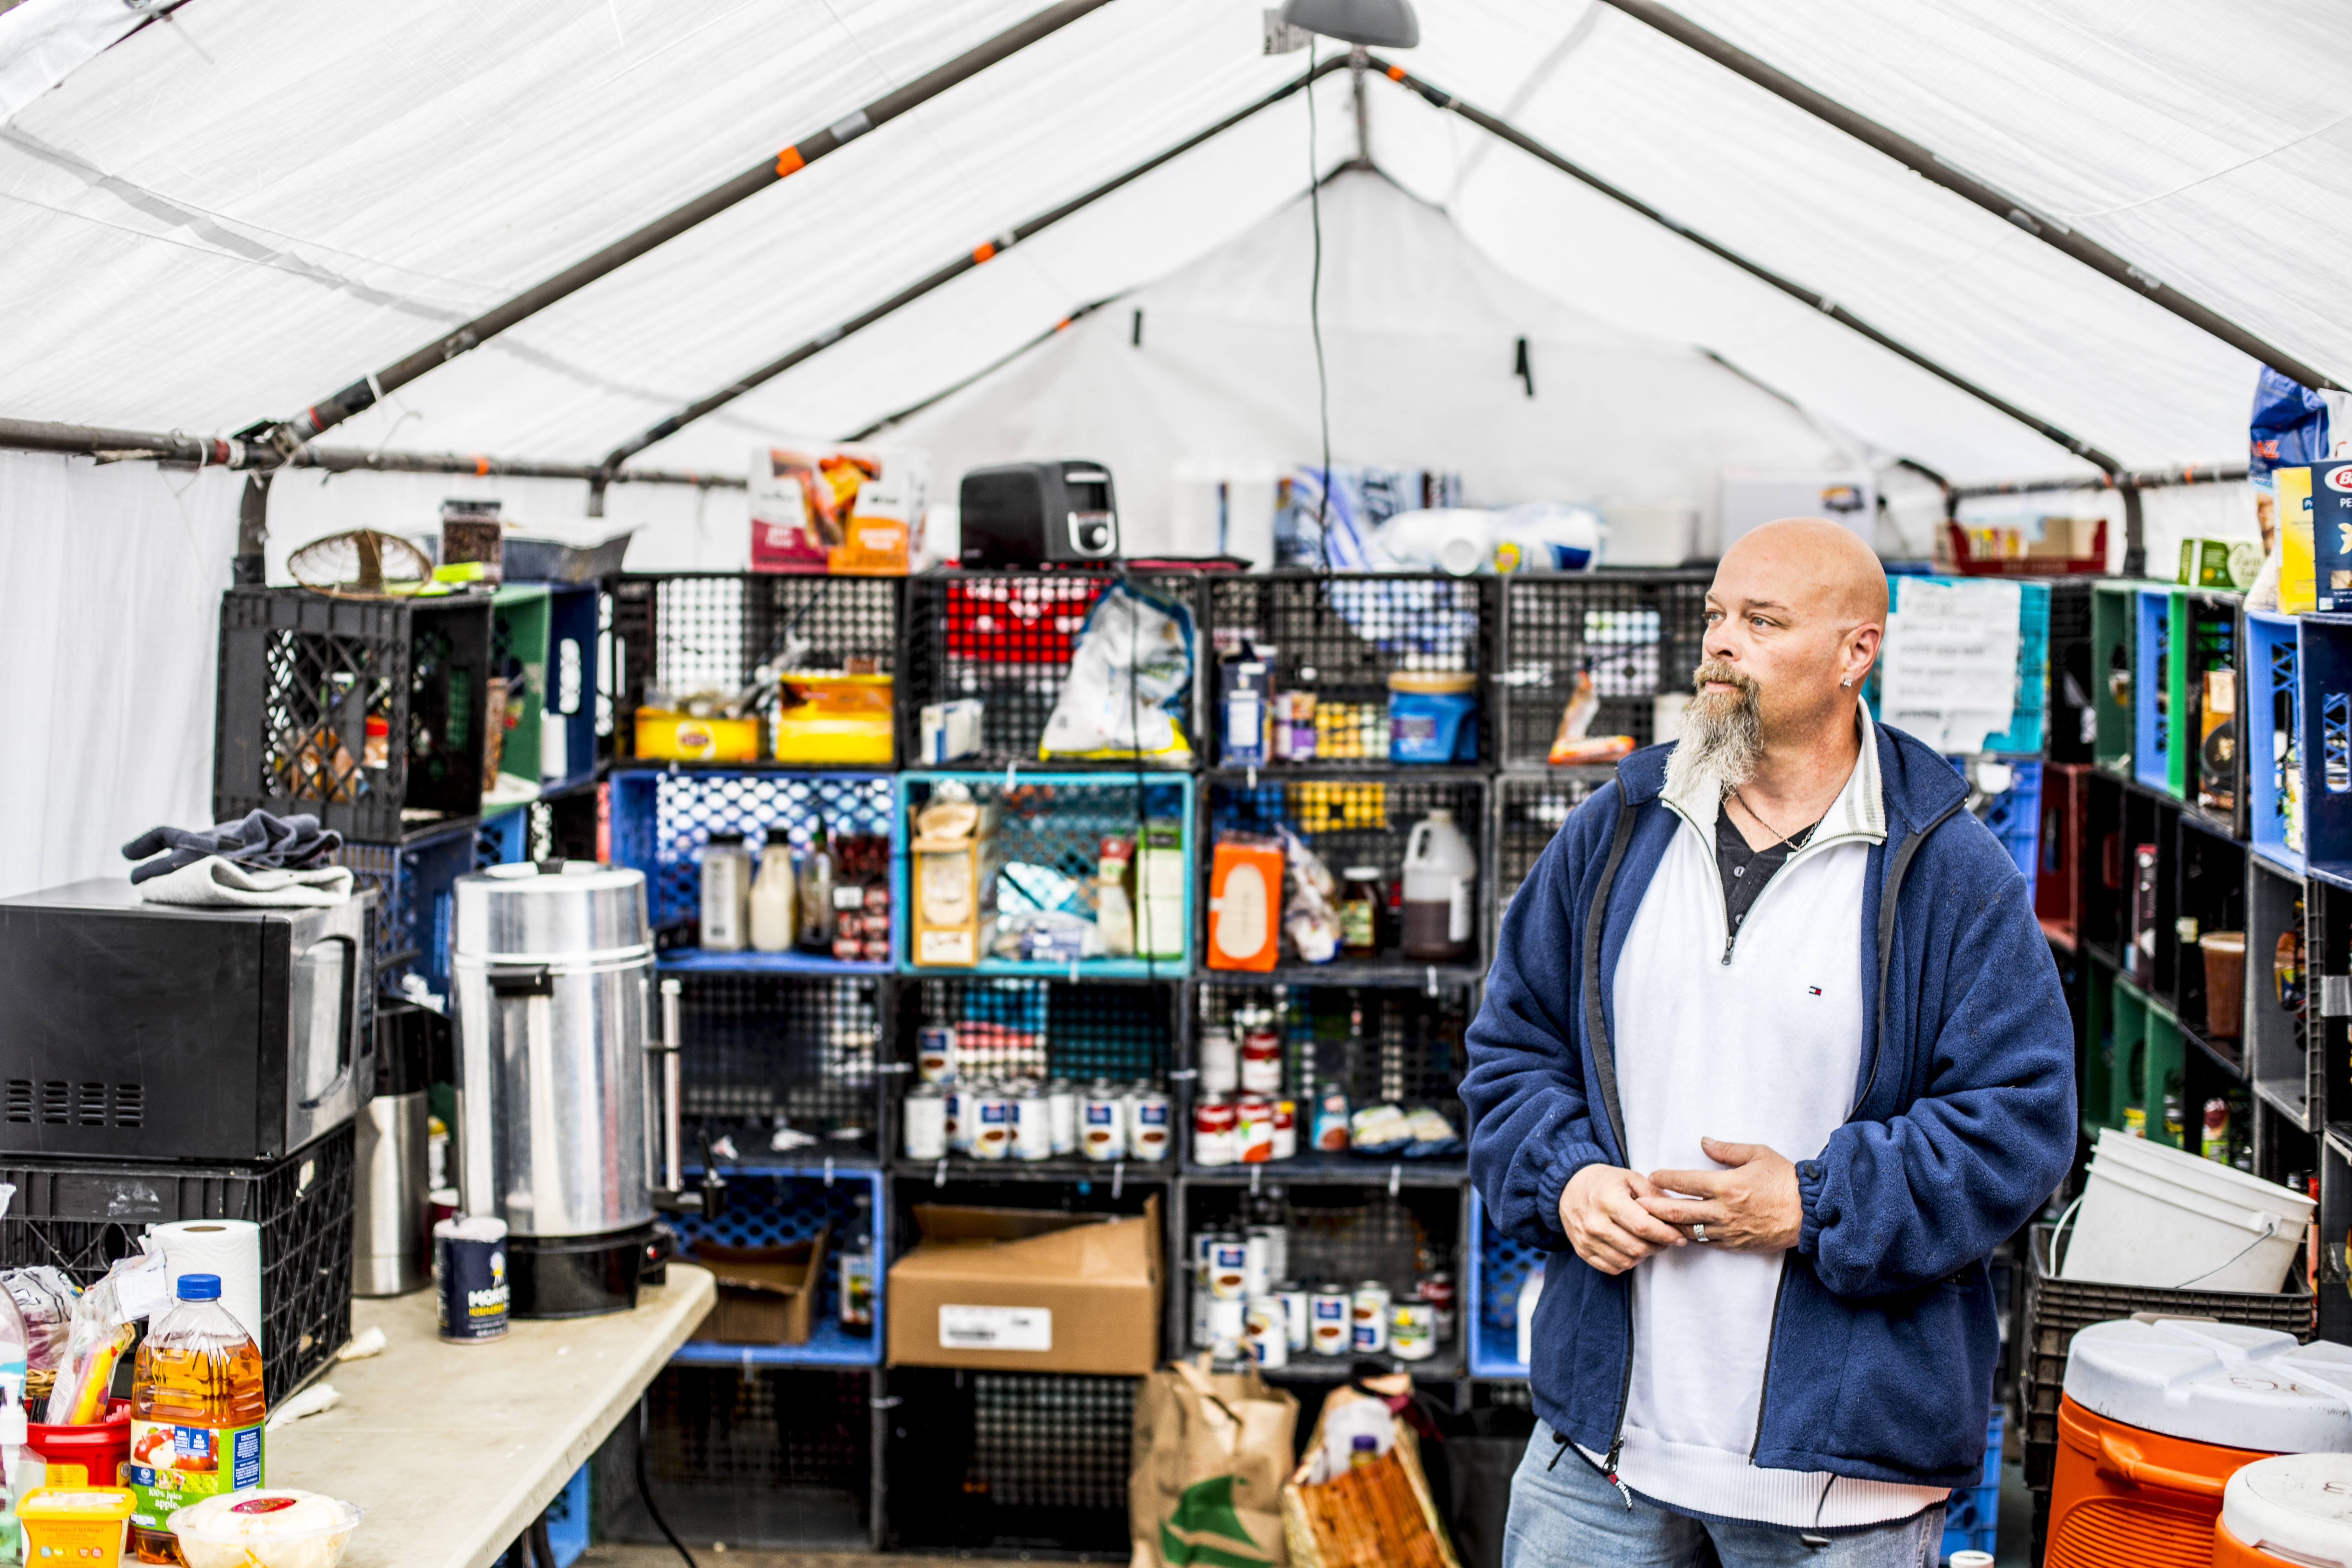 A look inside Tent City 3's food pantry